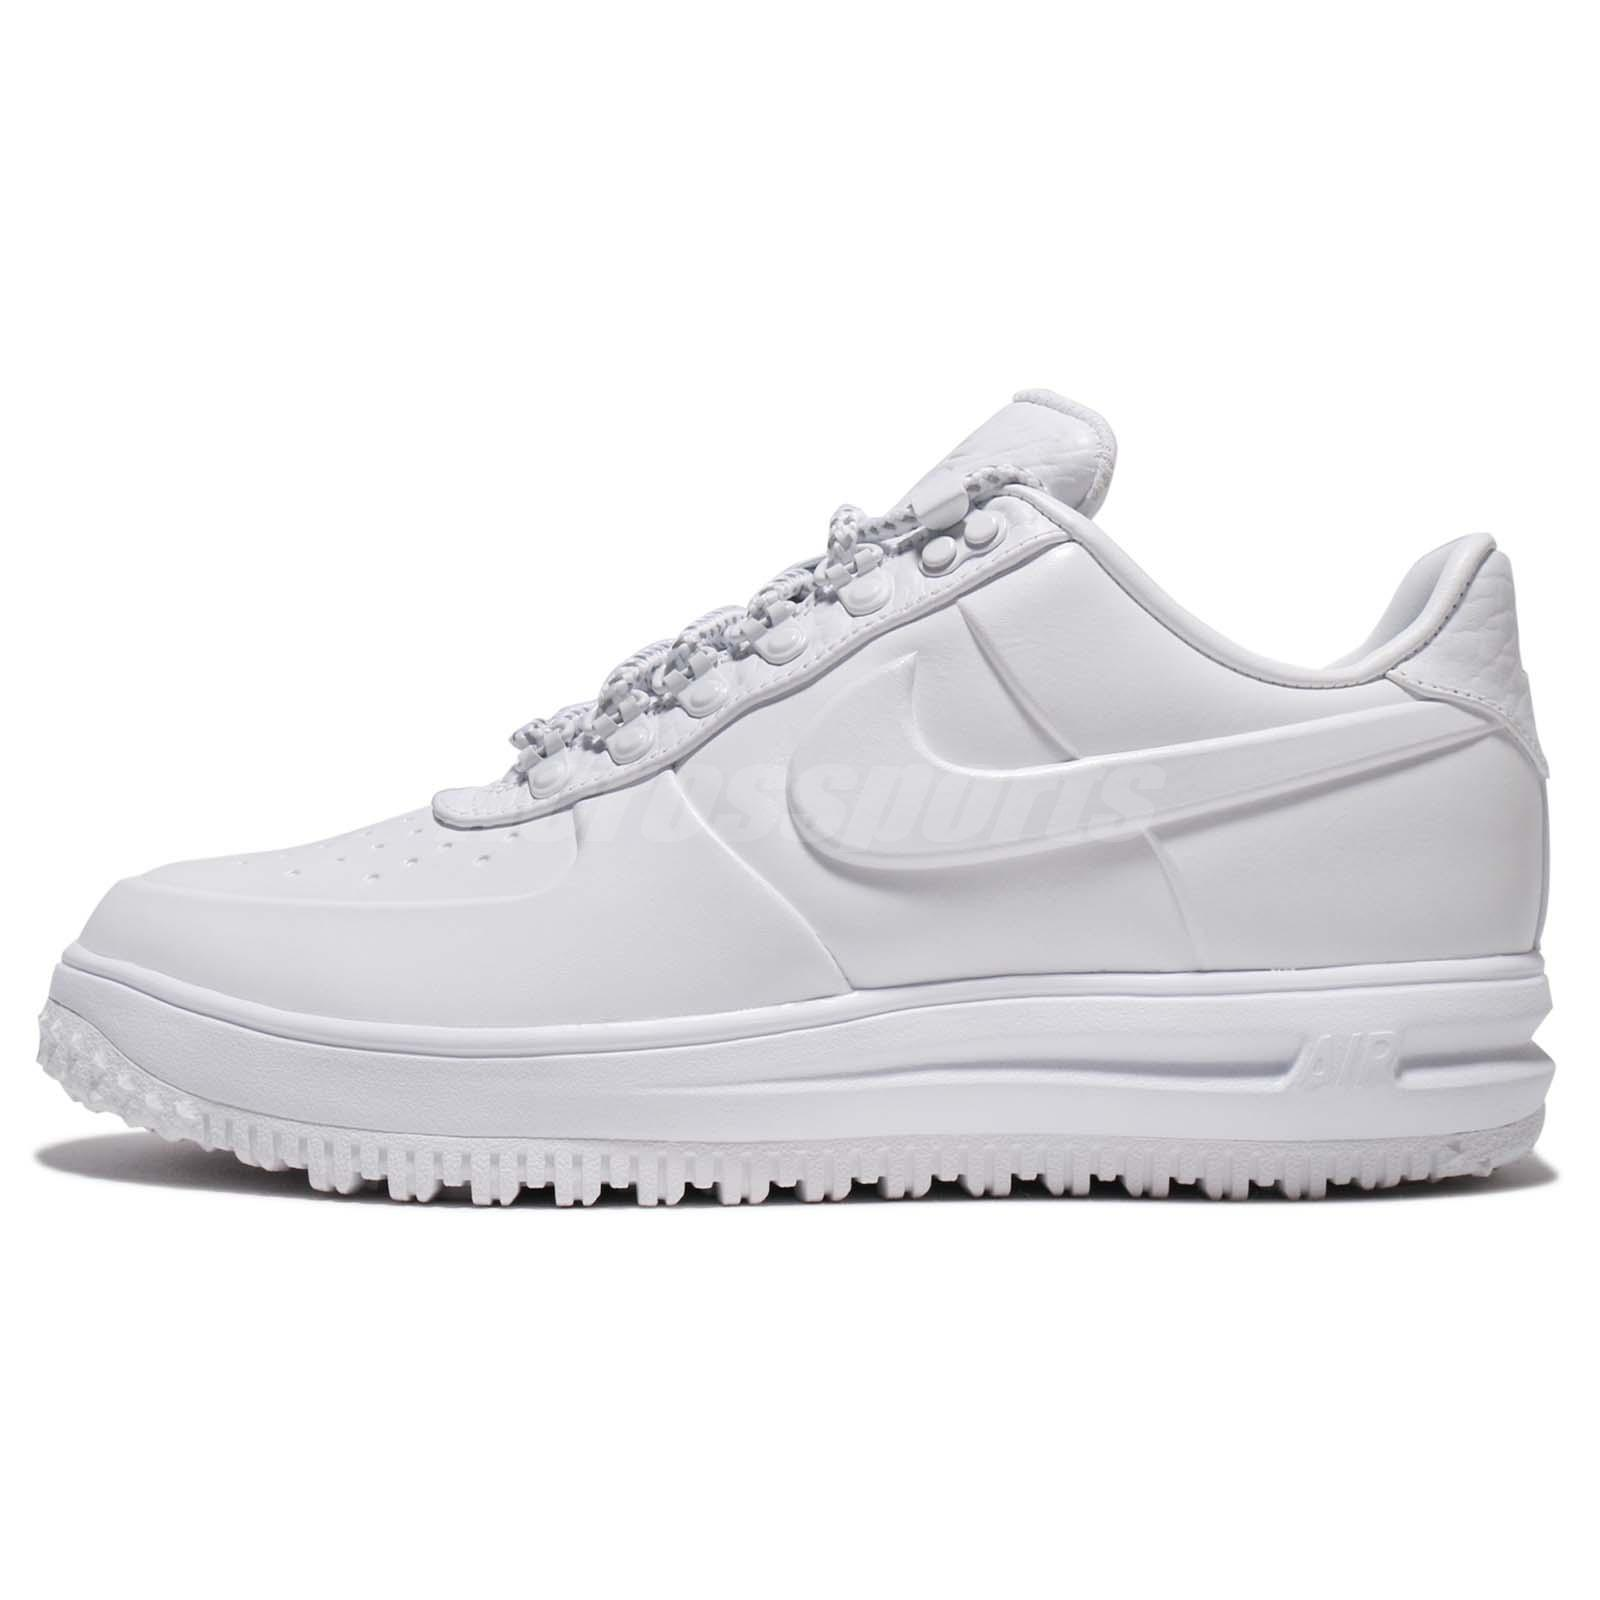 buy online 5ba5e 47b66 Nike LF1 Low PRM Lunar Force 1 Snow Pack White Men Winter Duckboot  AA1124-100